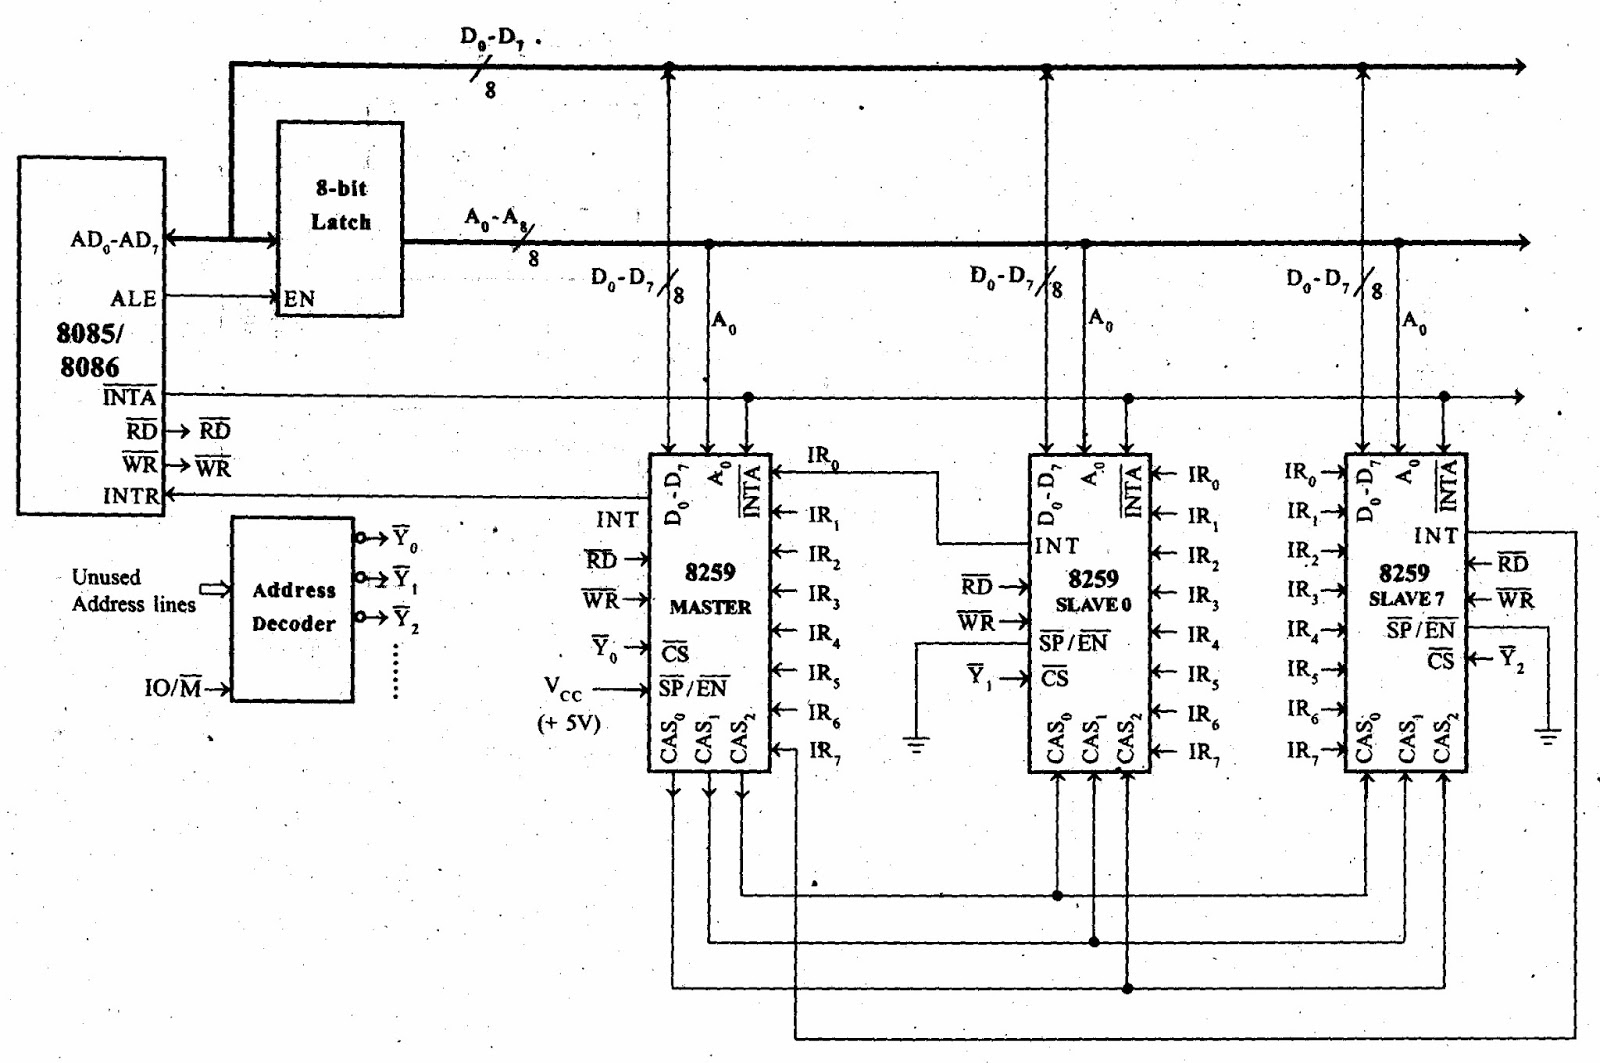 Functional Block Diagram Of 8086 Microprocessor Aqua Rite Wiring A Quotmedia To Get Quot All Datas In Electrical Science